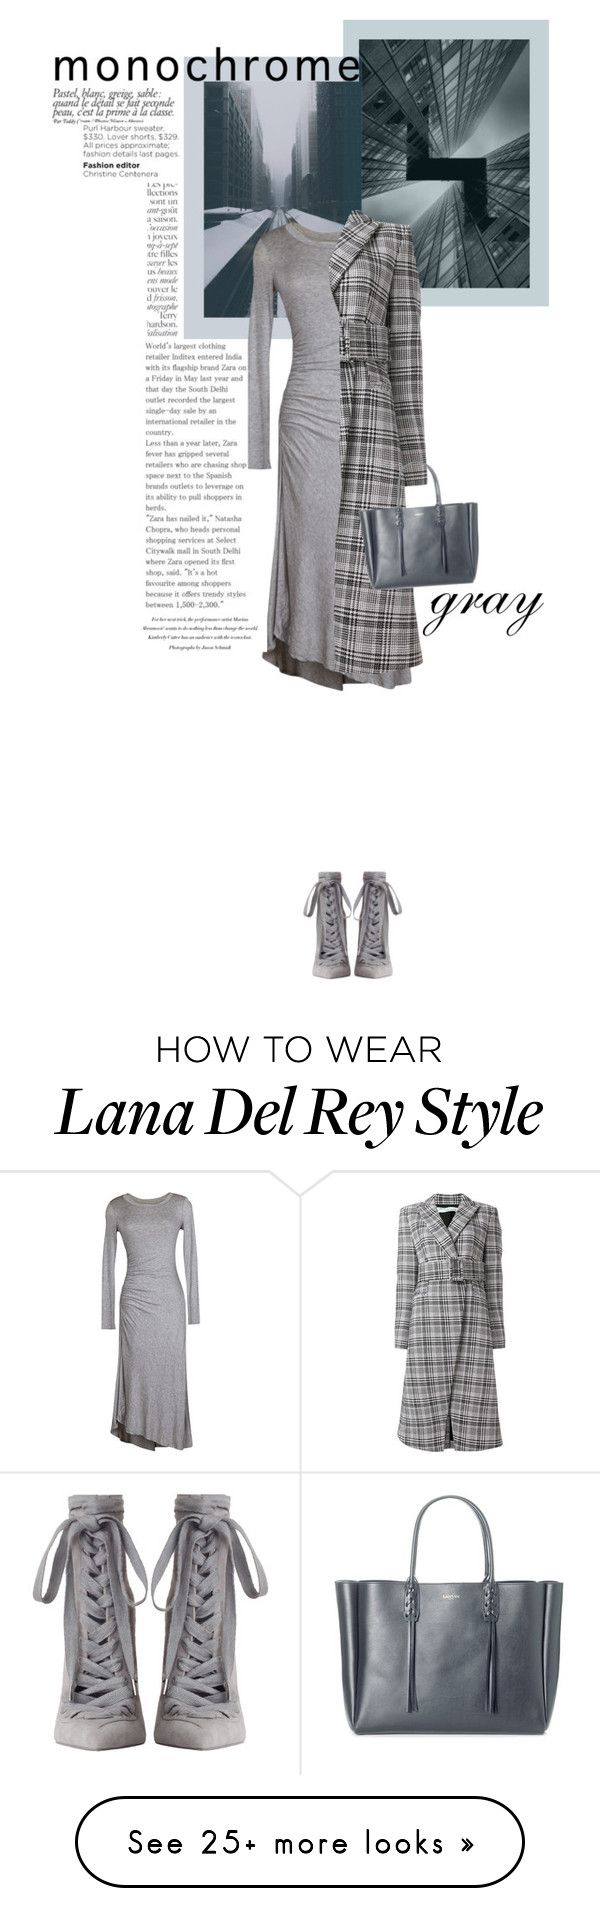 """""""Monochrome Gray"""" by paperdollsq on Polyvore featuring Velvet by Graham & Spencer, Zimmermann, Off-White, Lanvin and By Terry"""